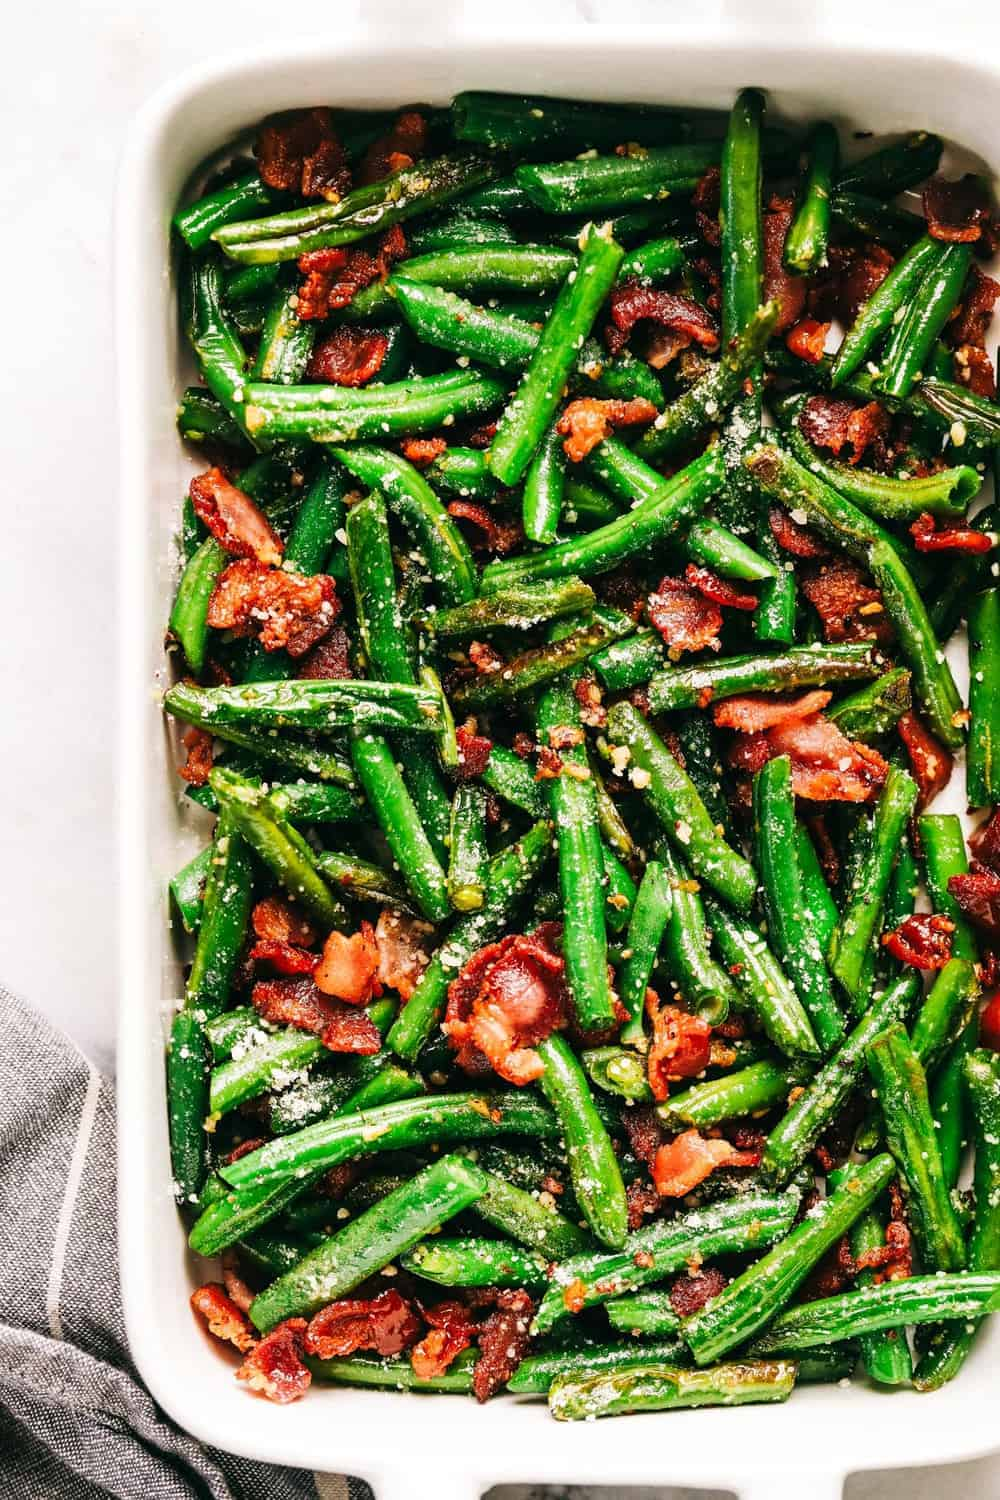 Garlic Parmesan Green Beans with Bacon